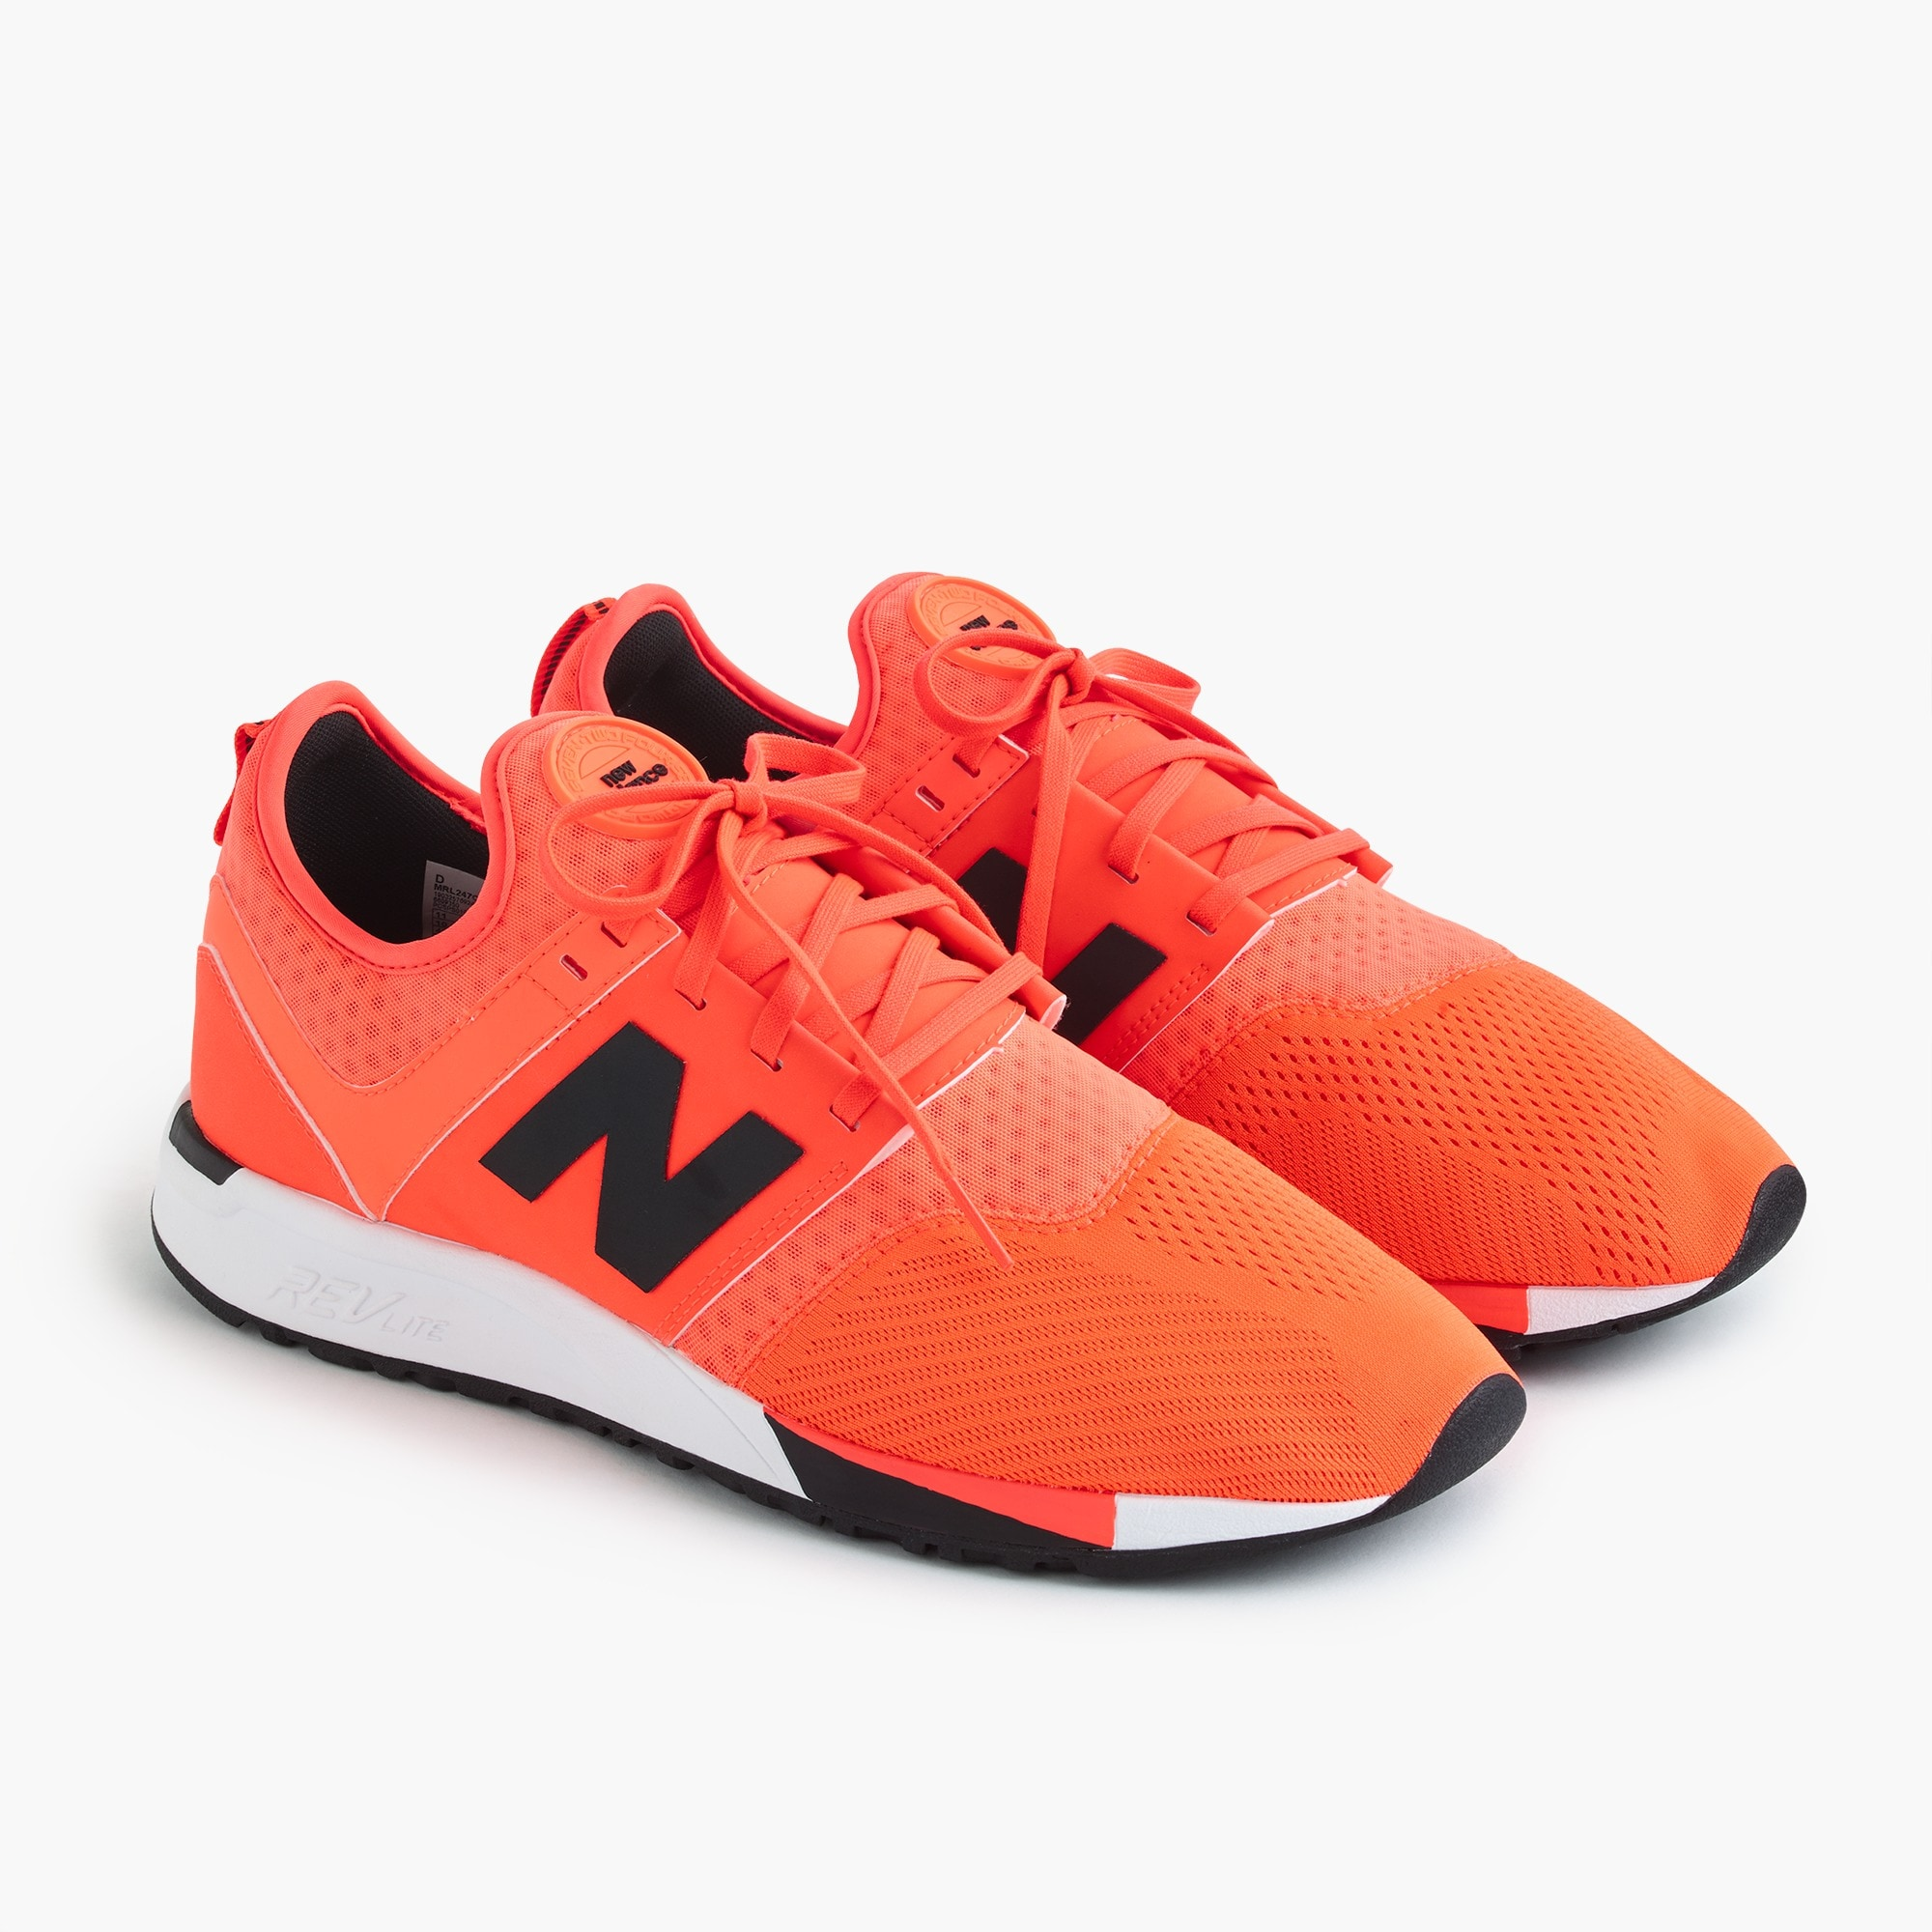 Image 3 for New Balance® 247 Sport sneakers in orange